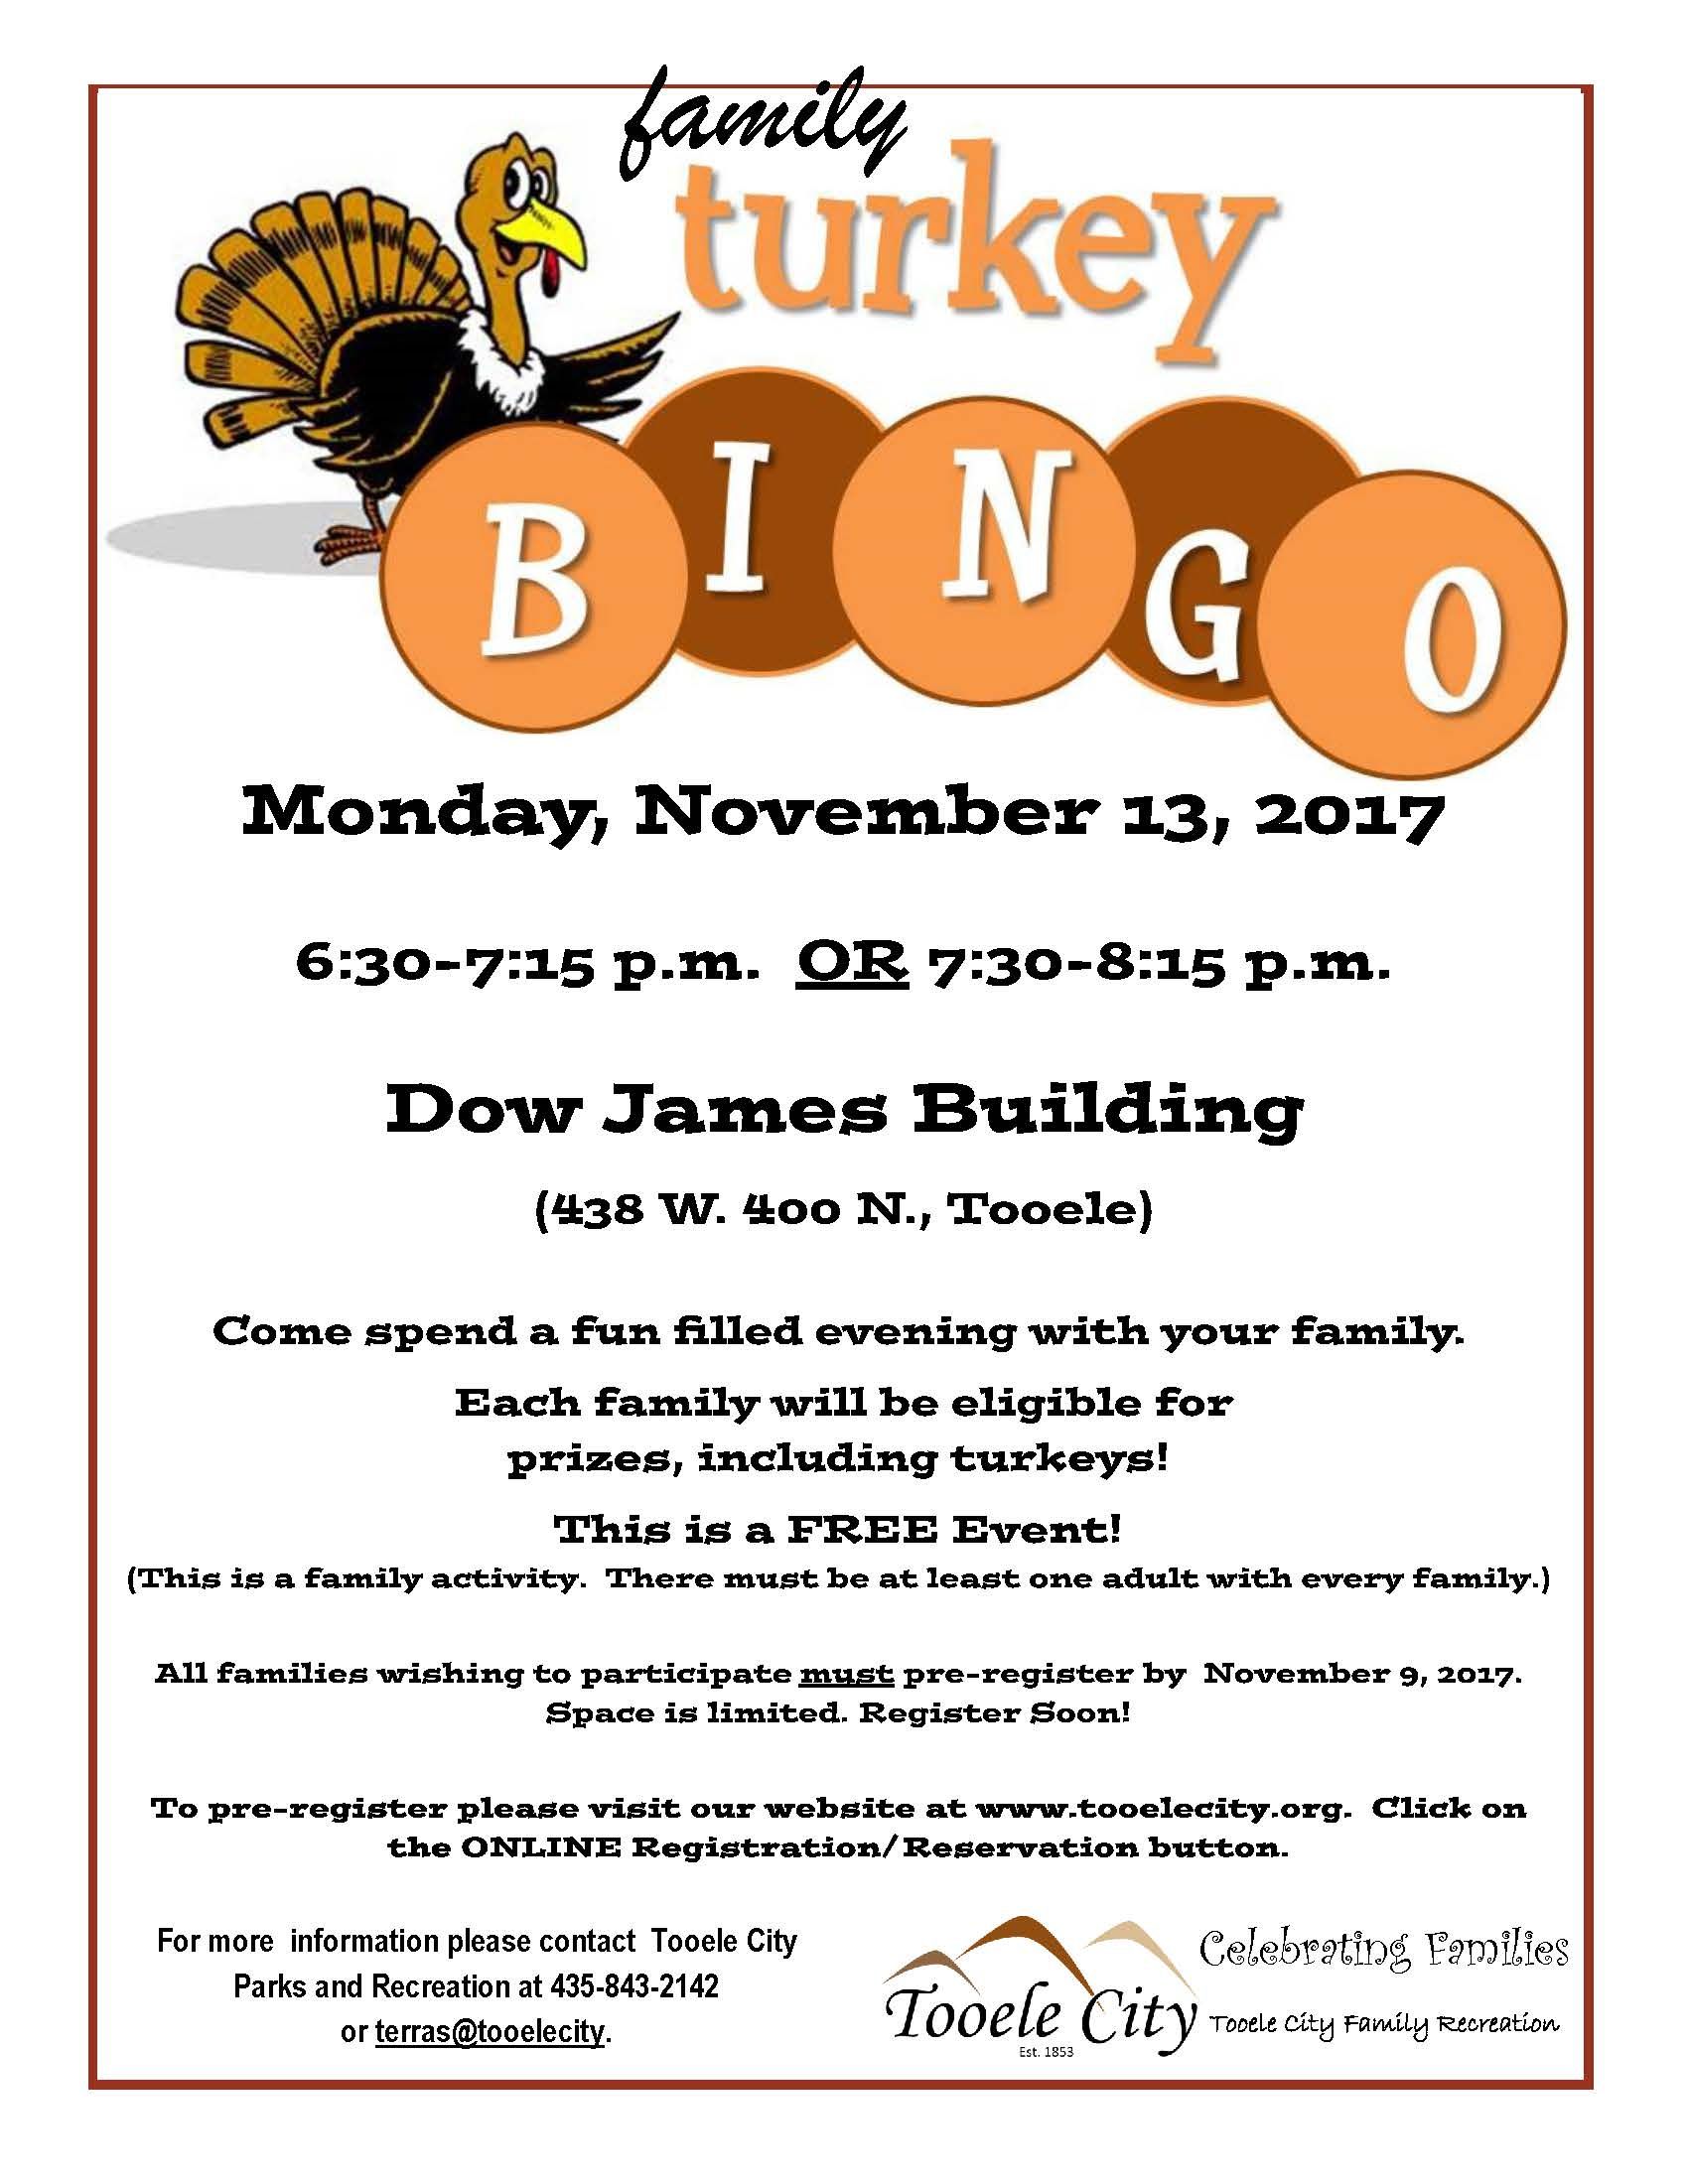 Turkey Bingo - A FREE Family Event! @ Dow James | Tooele | Utah | United States